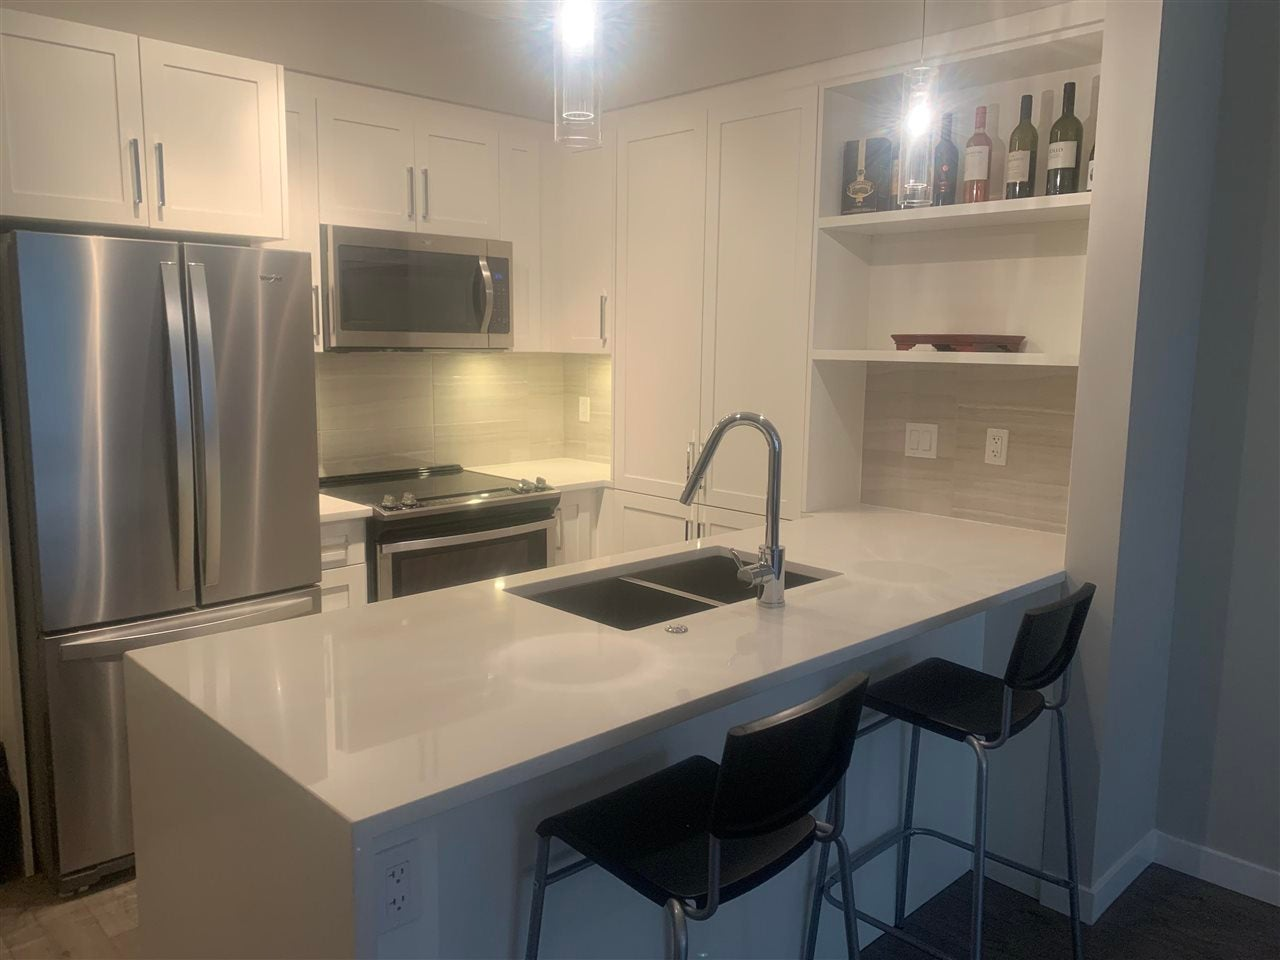 E104 20211 66 AVENUE - Willoughby Heights Apartment/Condo for sale, 1 Bedroom (R2573439) - #1